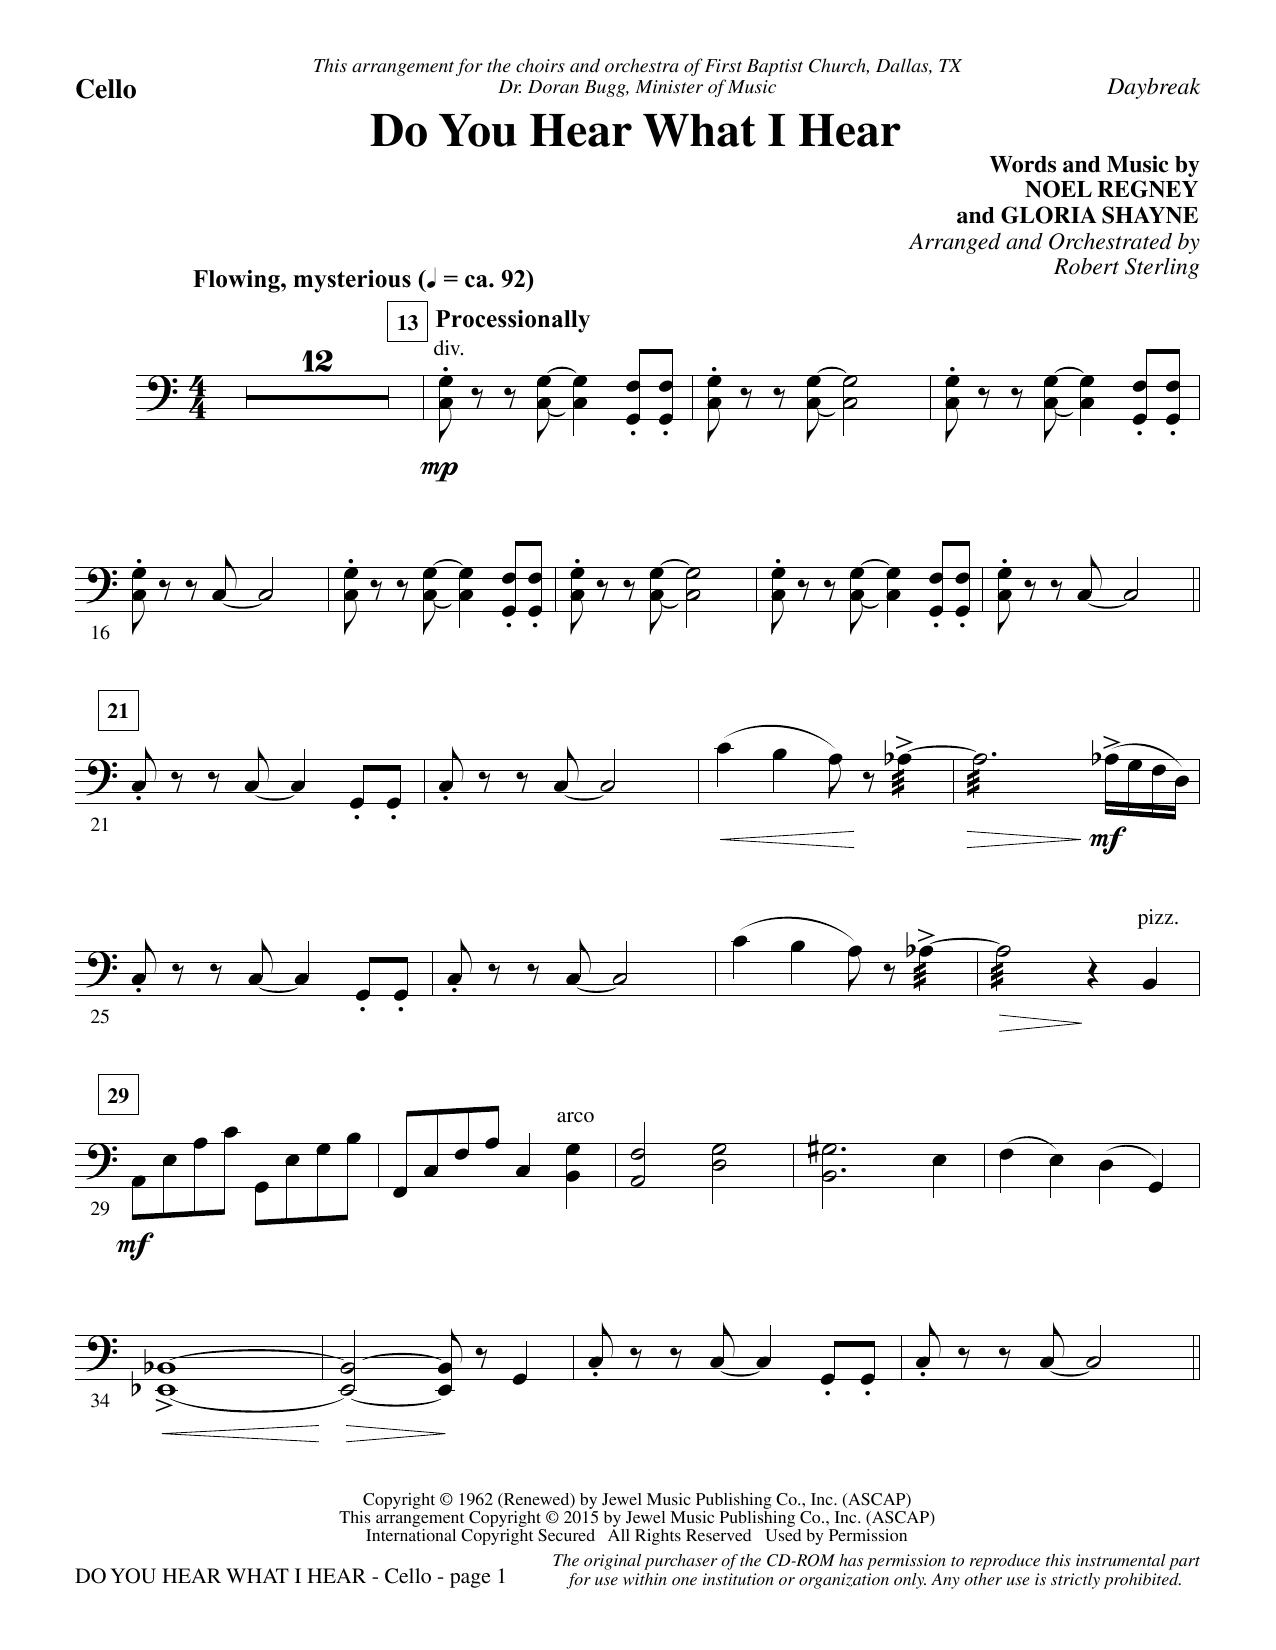 Do You Hear What I Hear - Cello Sheet Music